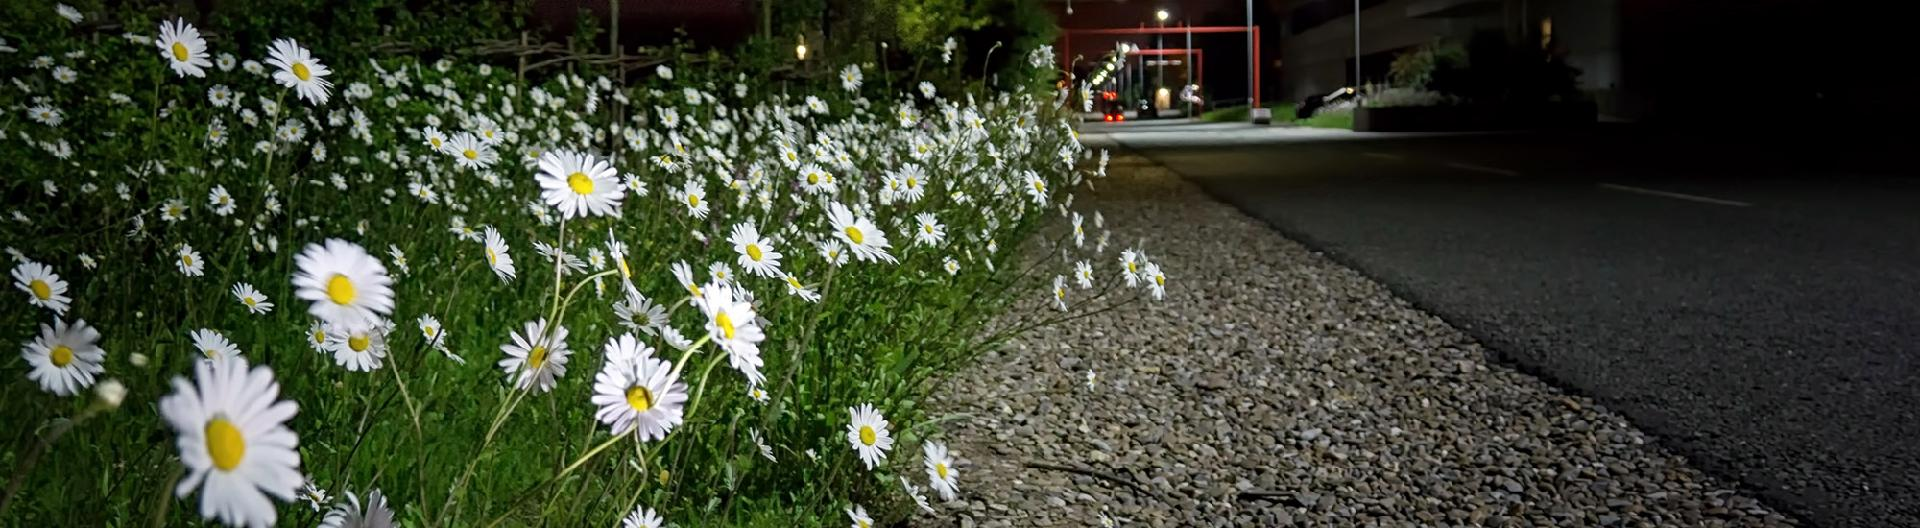 cars-and-flowers.jpg